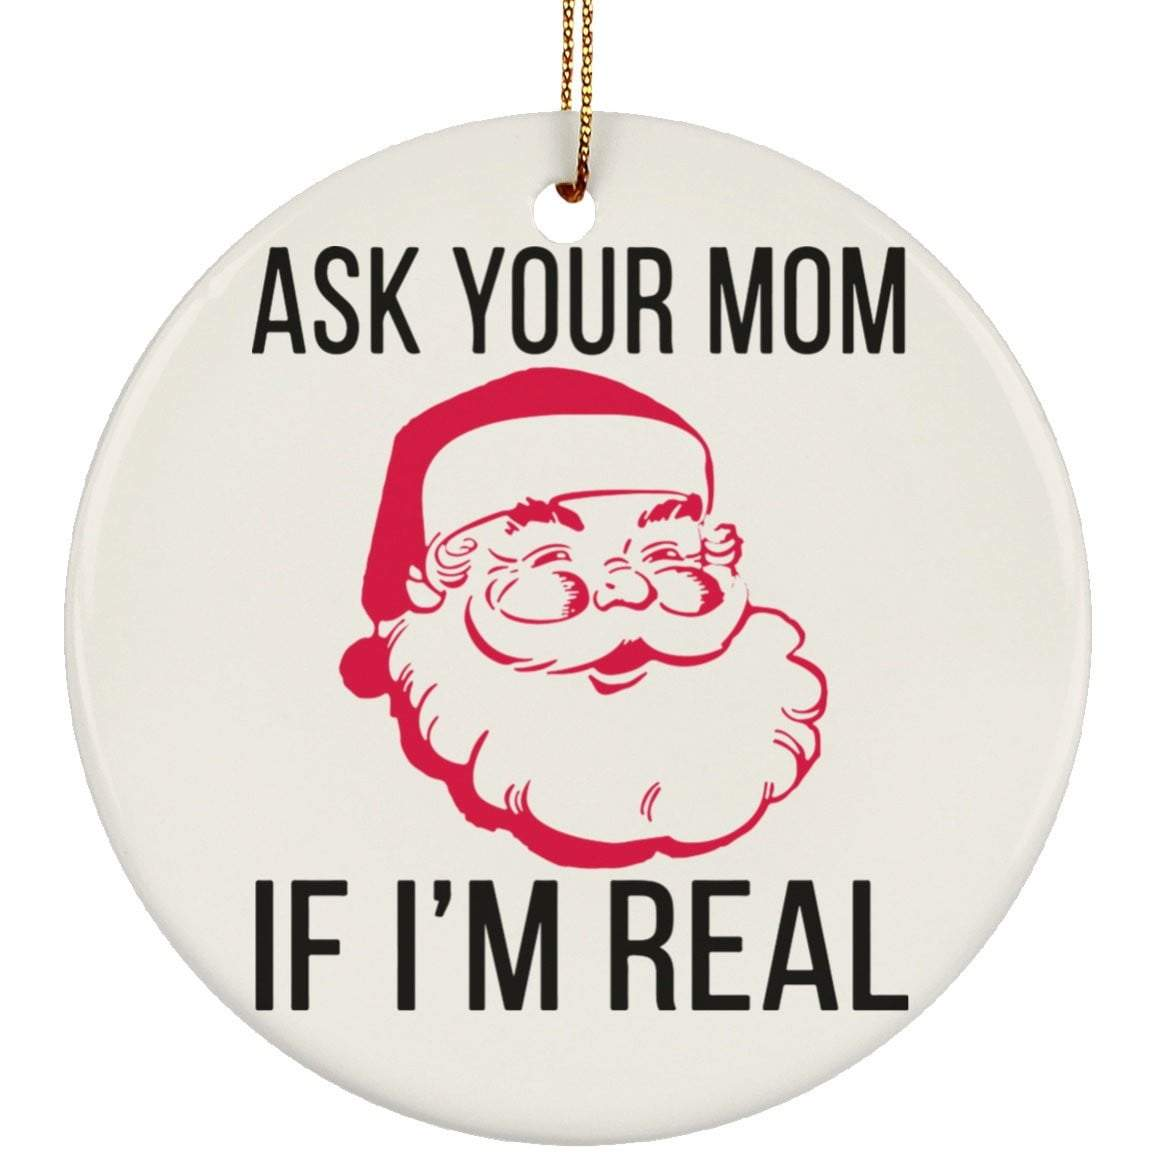 ASK YOUR MOM Christmas Ceramic Circle Ornament